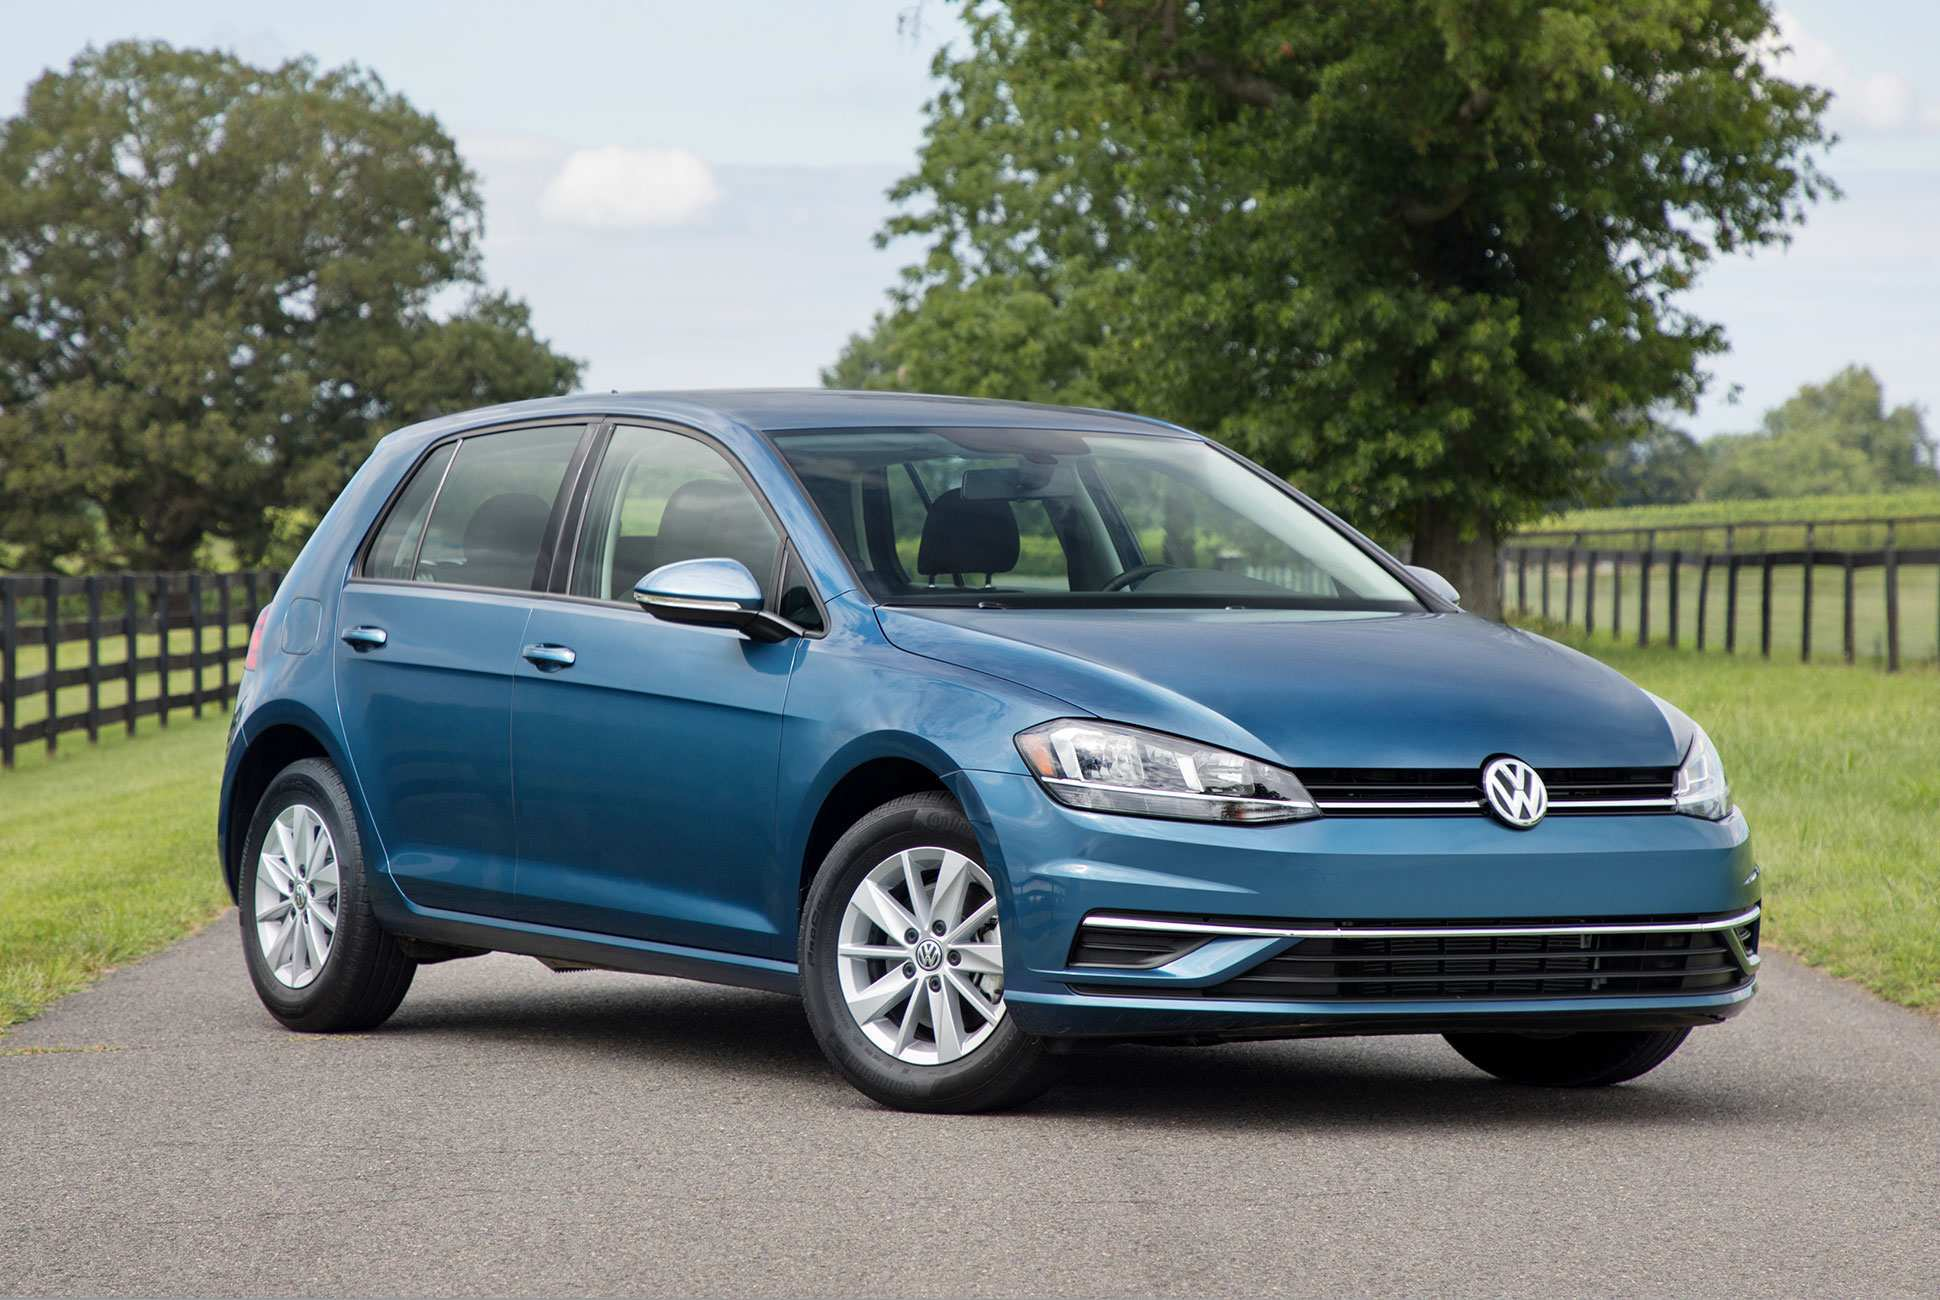 18 Great Volkswagen Cars 2020 Price and Review with Volkswagen Cars 2020